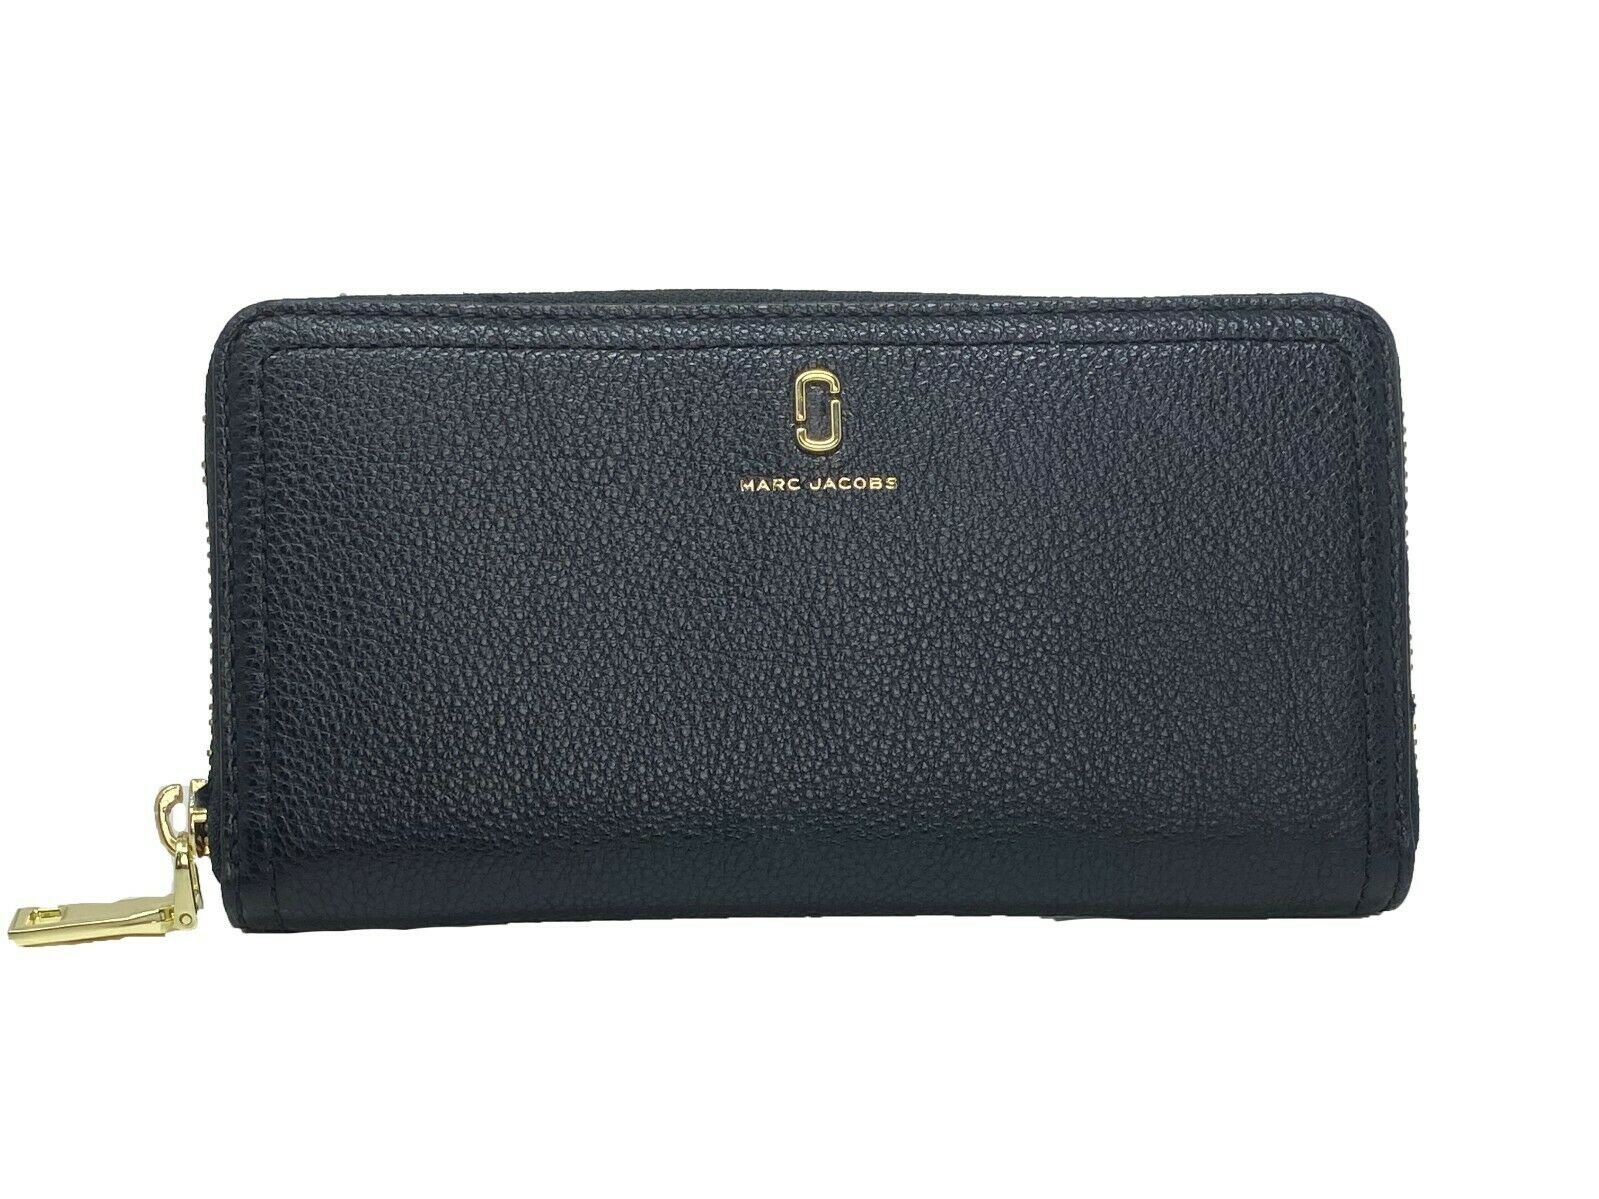 New/tag ~ Marc Jacobs Continental Wallet. Black. Credit Card Holder